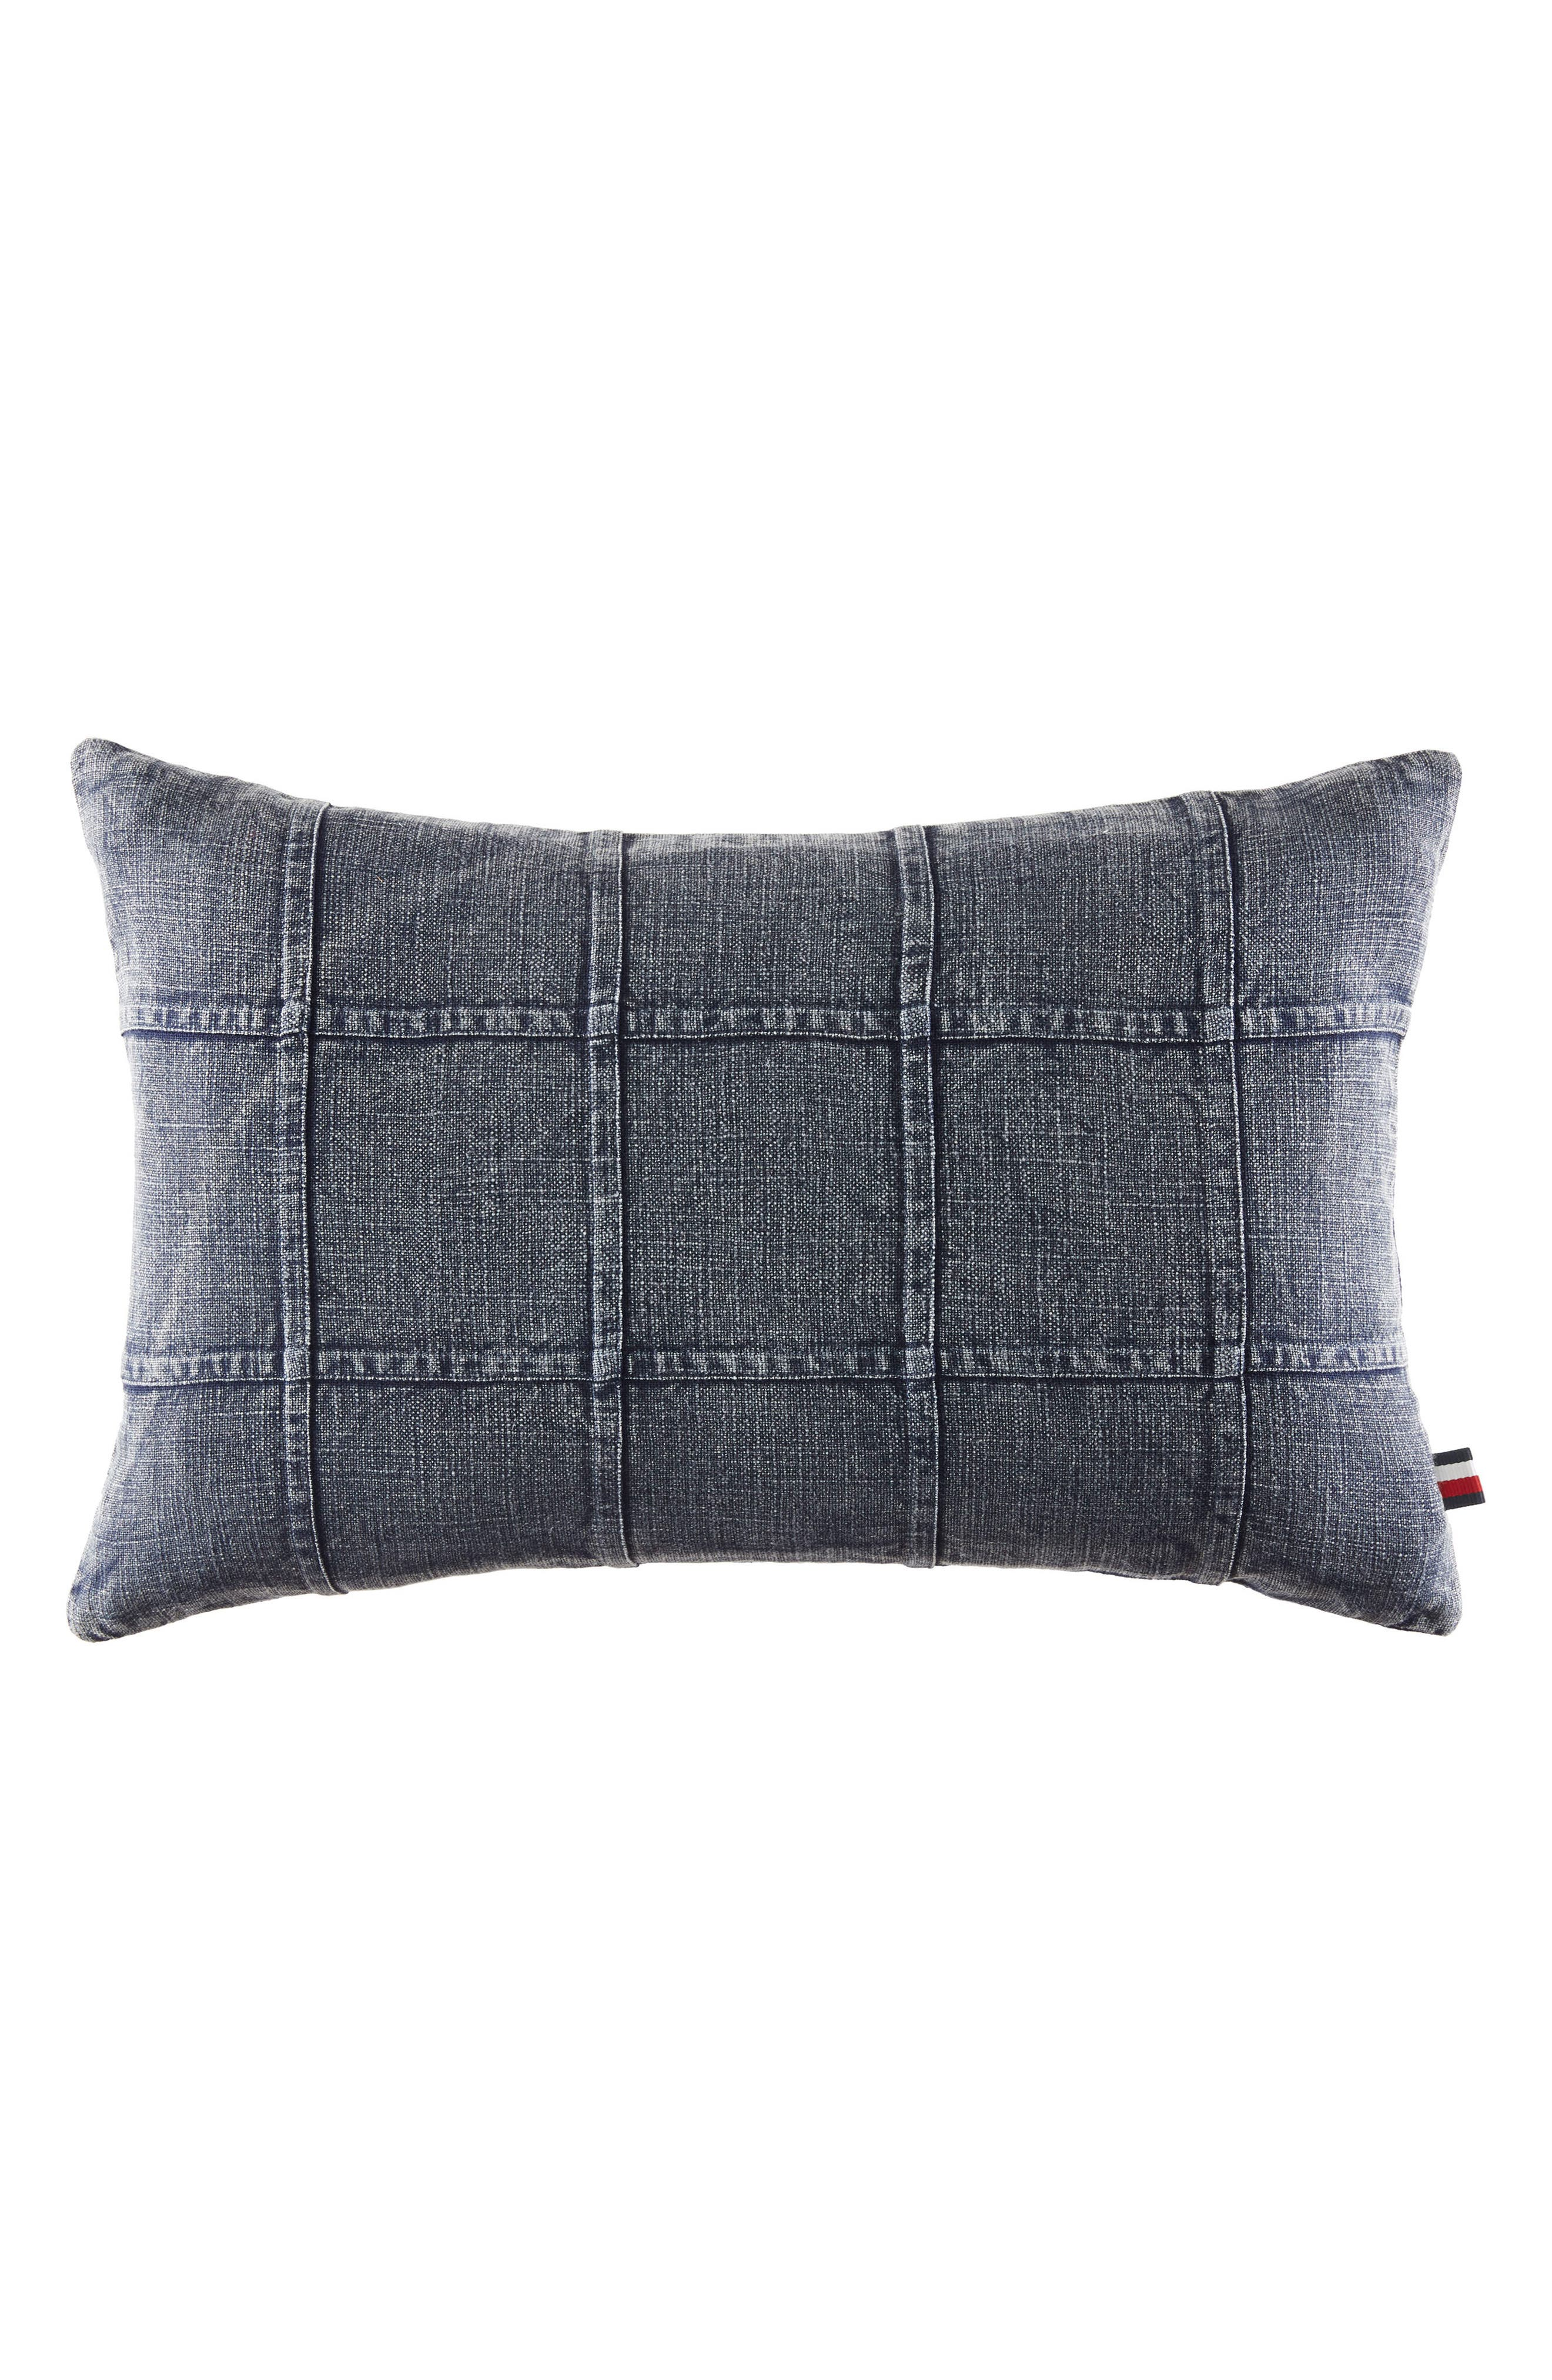 Main Image - Tommy Hilfiger Dusted Indigo Denim Accent Pillow